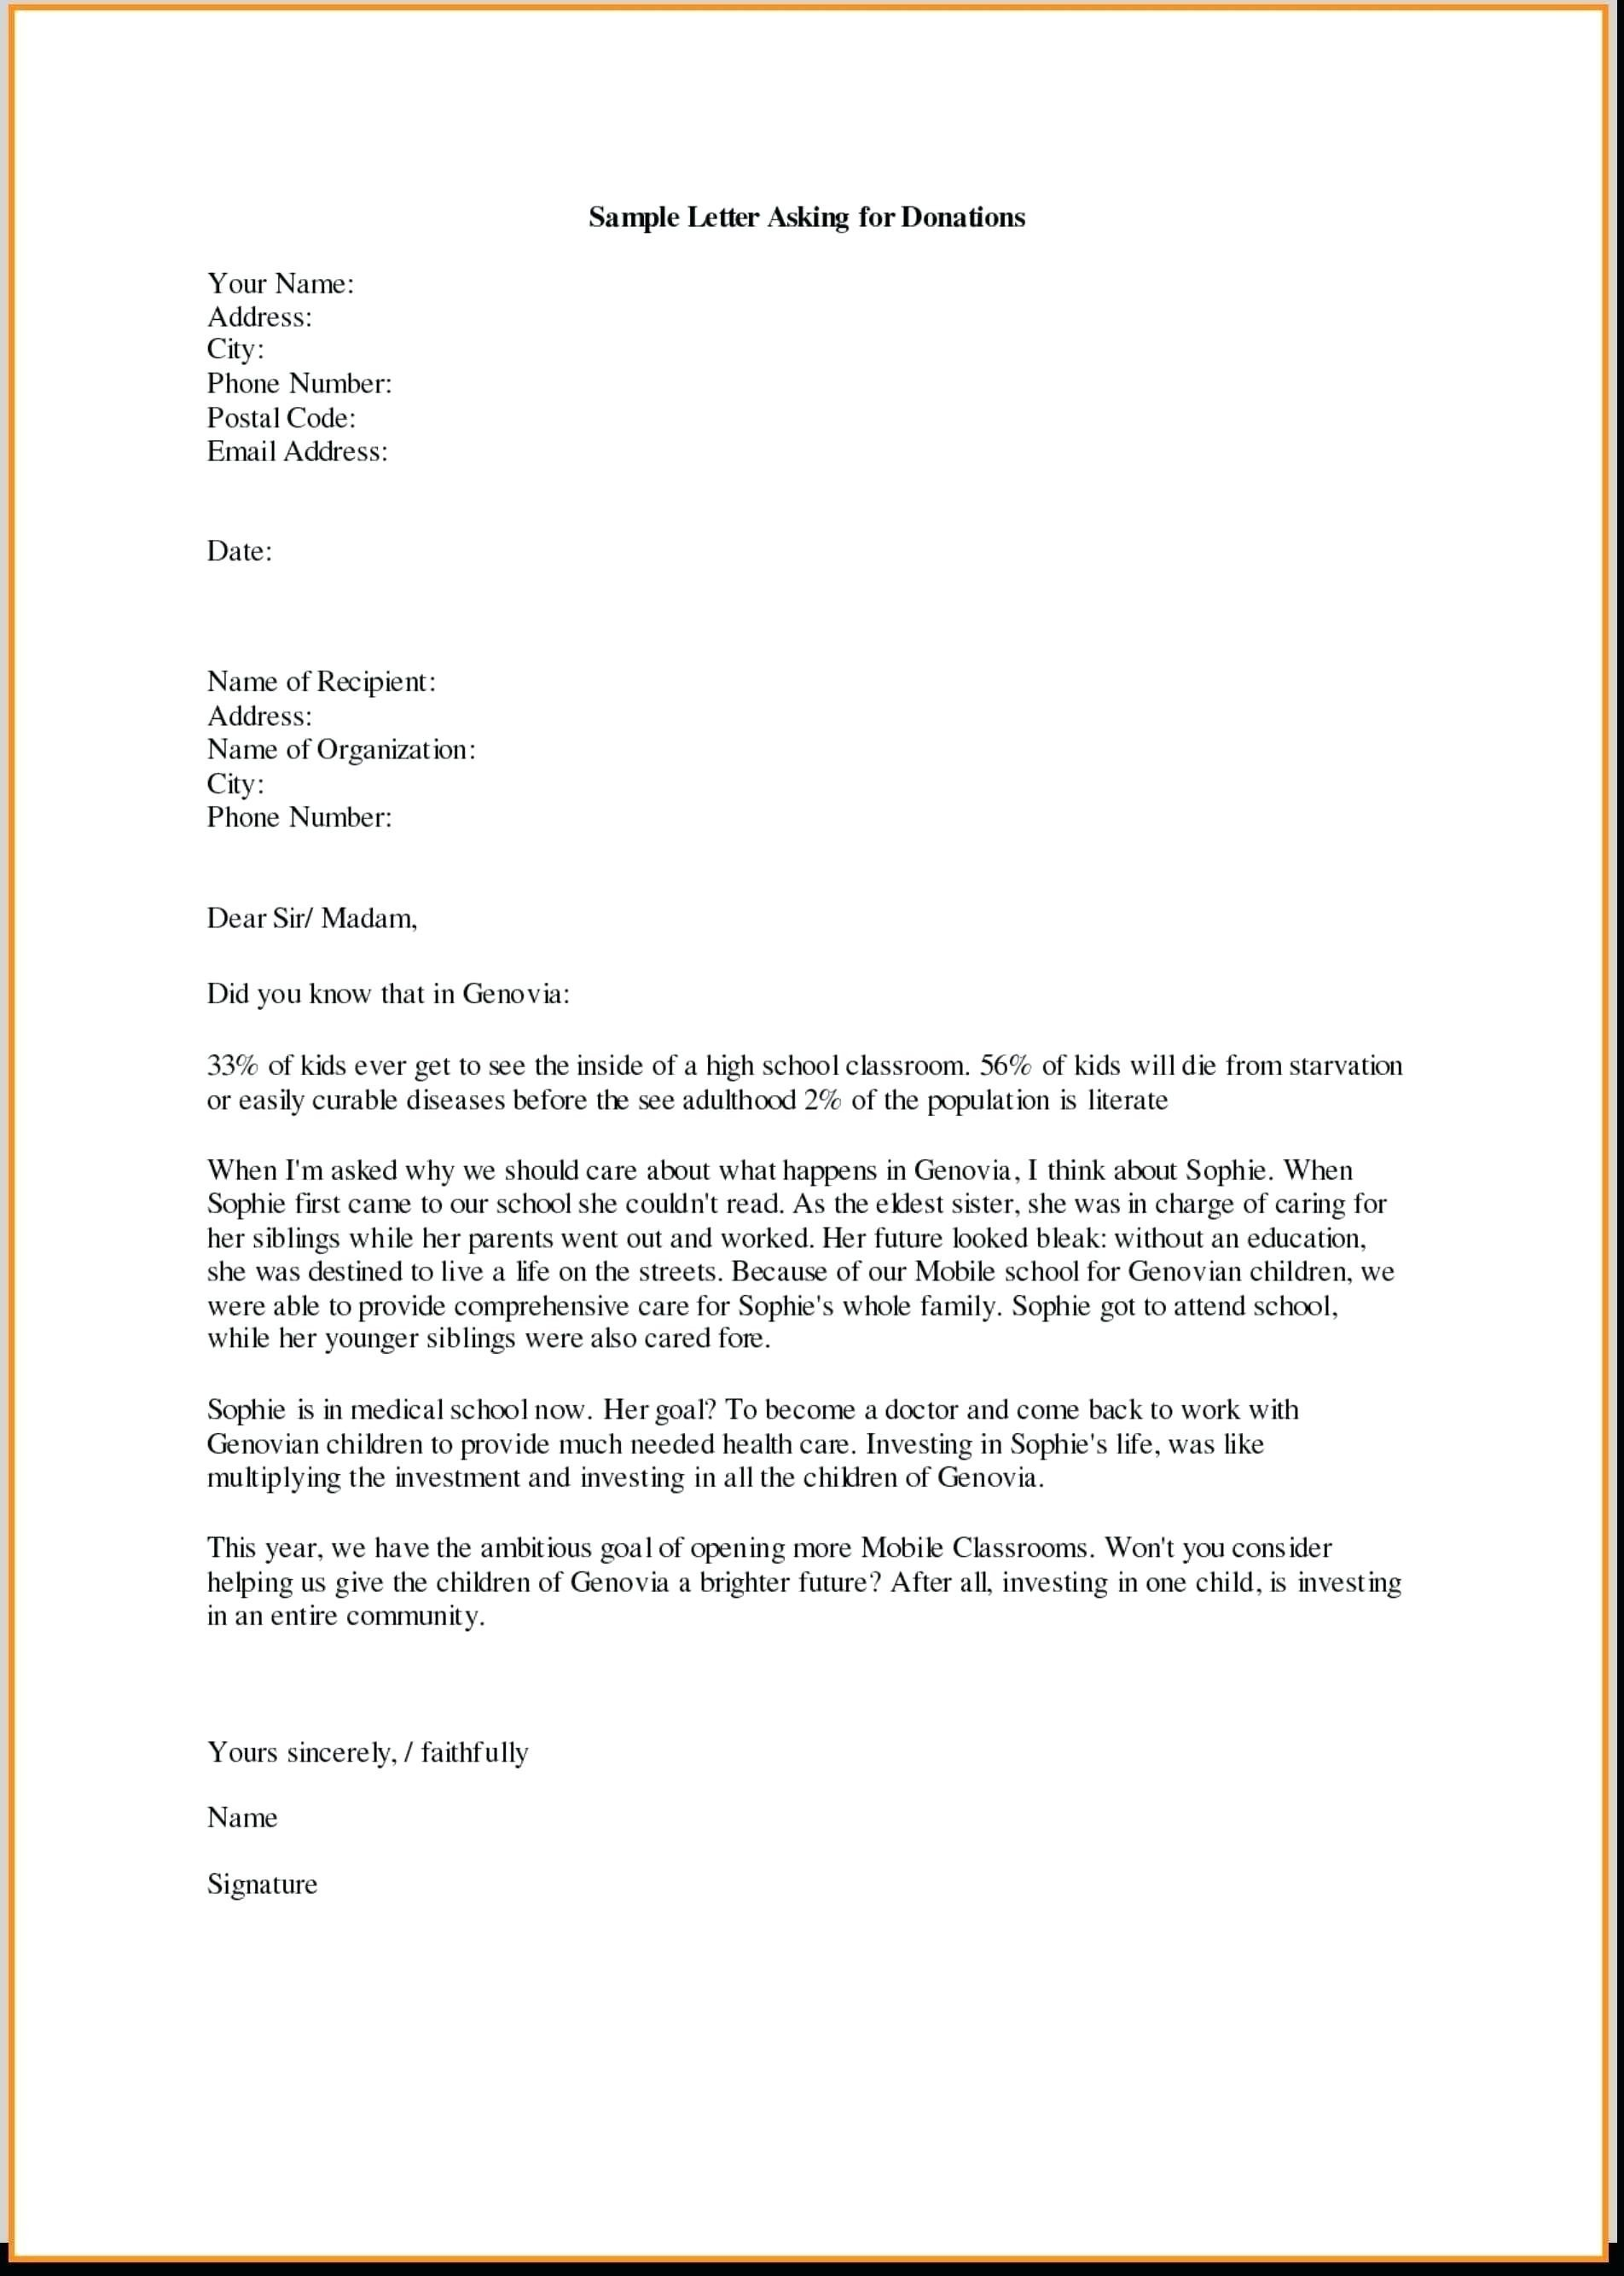 Charity Letter Template asking for Donations - Samples Letters Request Donation Best Samples Letters Request